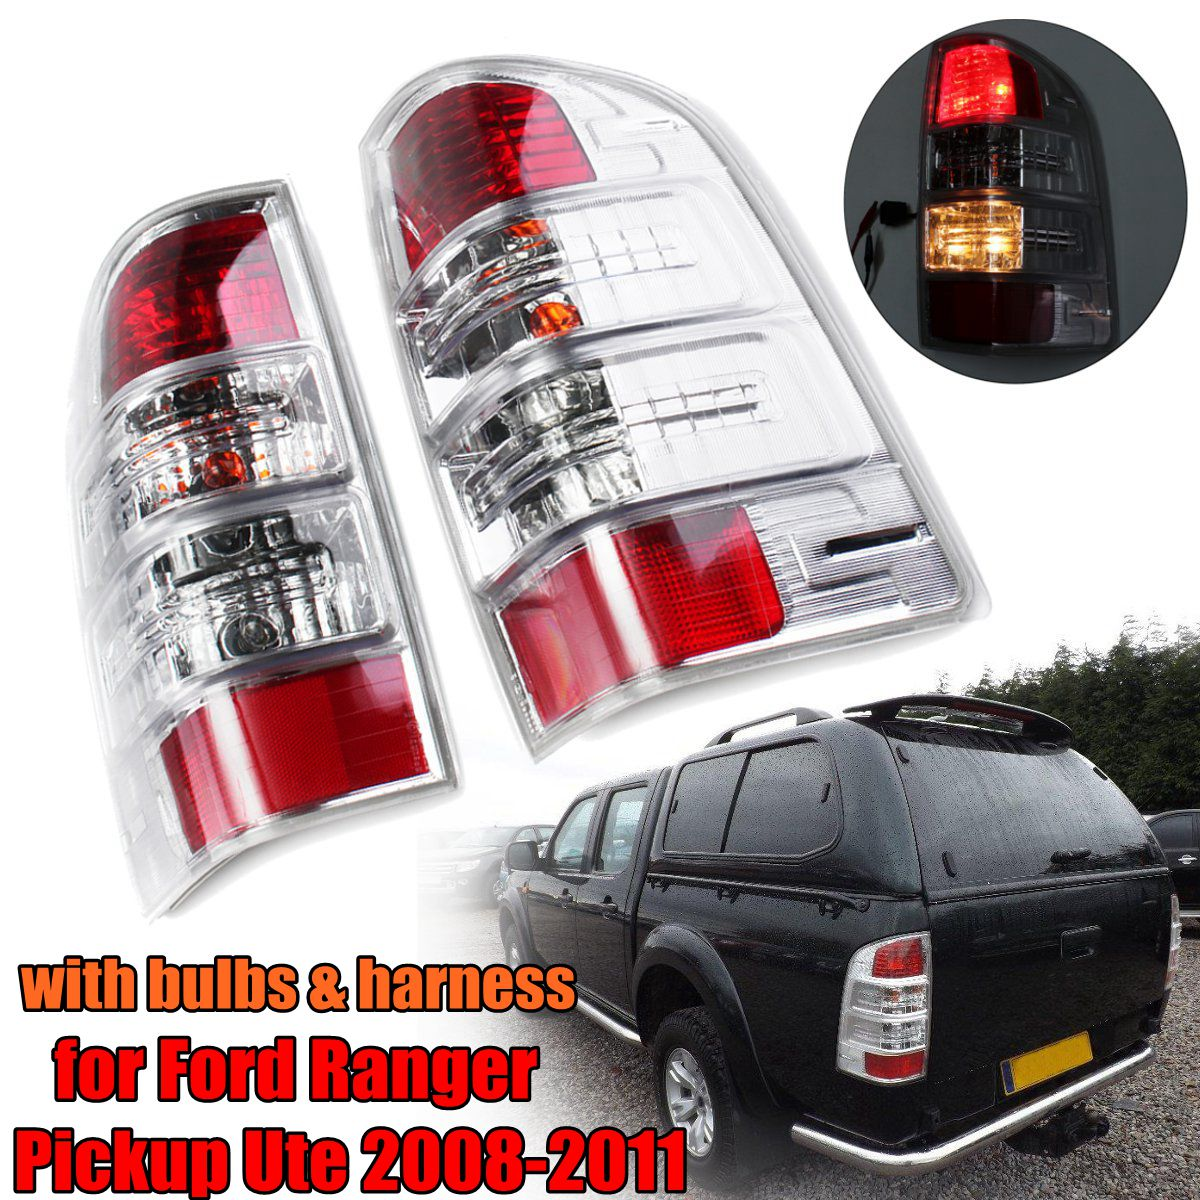 Taillight LED Taillight Left/Right Rear Car Styling Head Lamp Tail Light Lamp w/Bulb Harness for Ford Ranger Pickup Ute 2008-11 1 pc outer rear tail light lamp taillamp taillight rh right side gr1a 51 170 for mazda 6 2005 2010 gg page 7